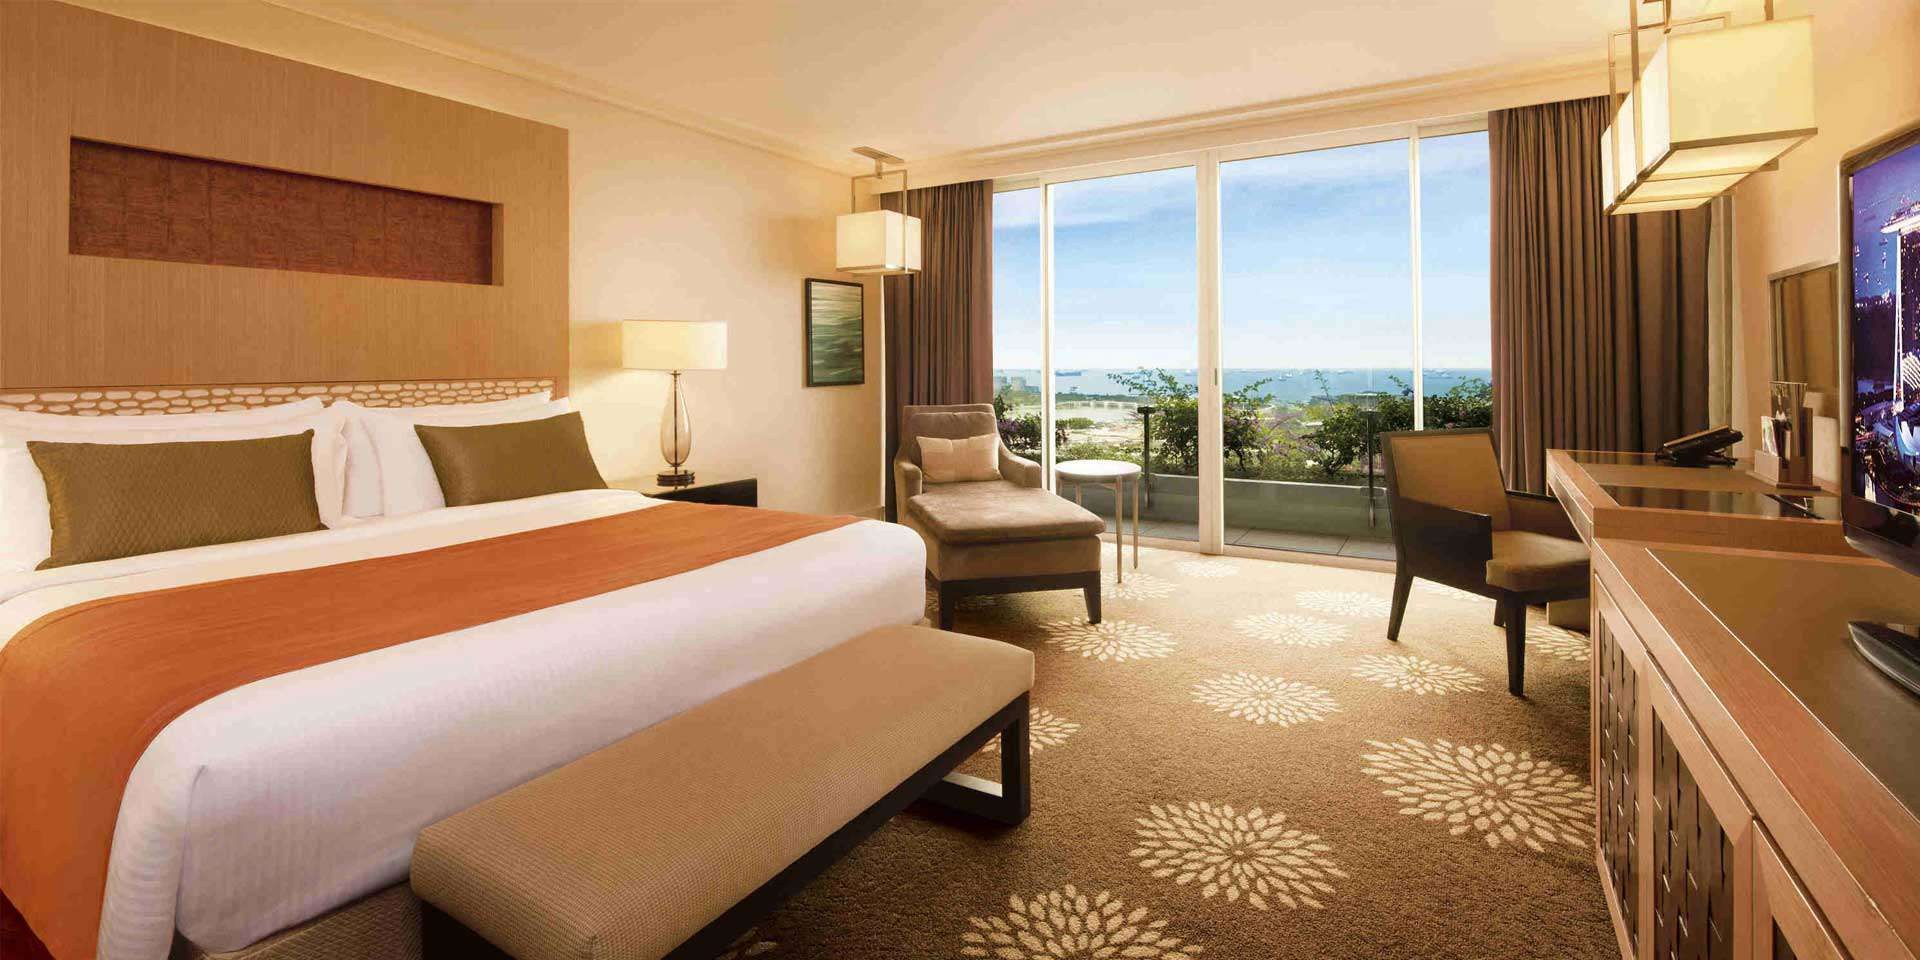 Premier Room at Marina Bay Sands with King Bed and Garden View